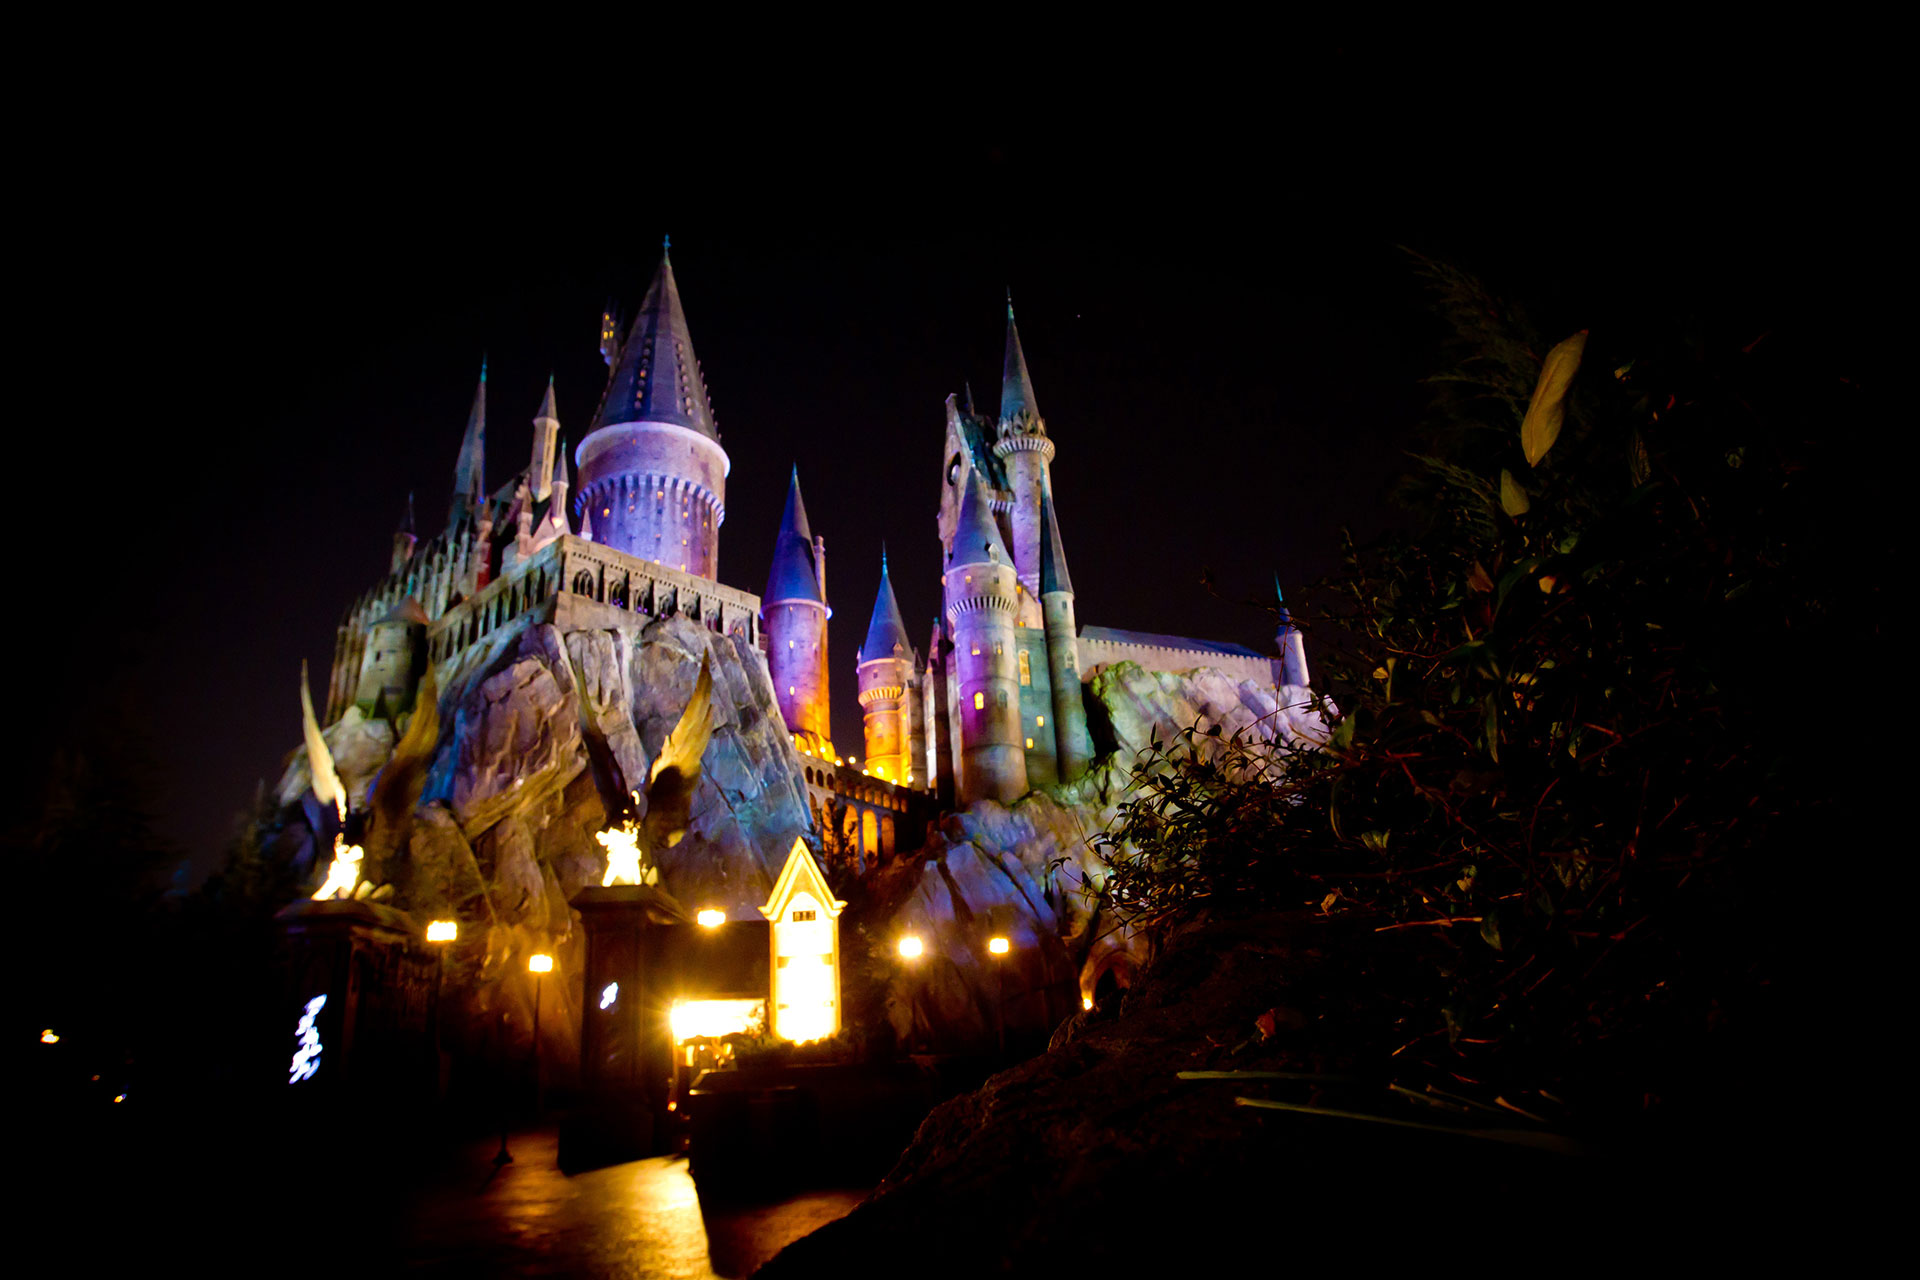 Nighttime at The Wizarding World of Harry Potter